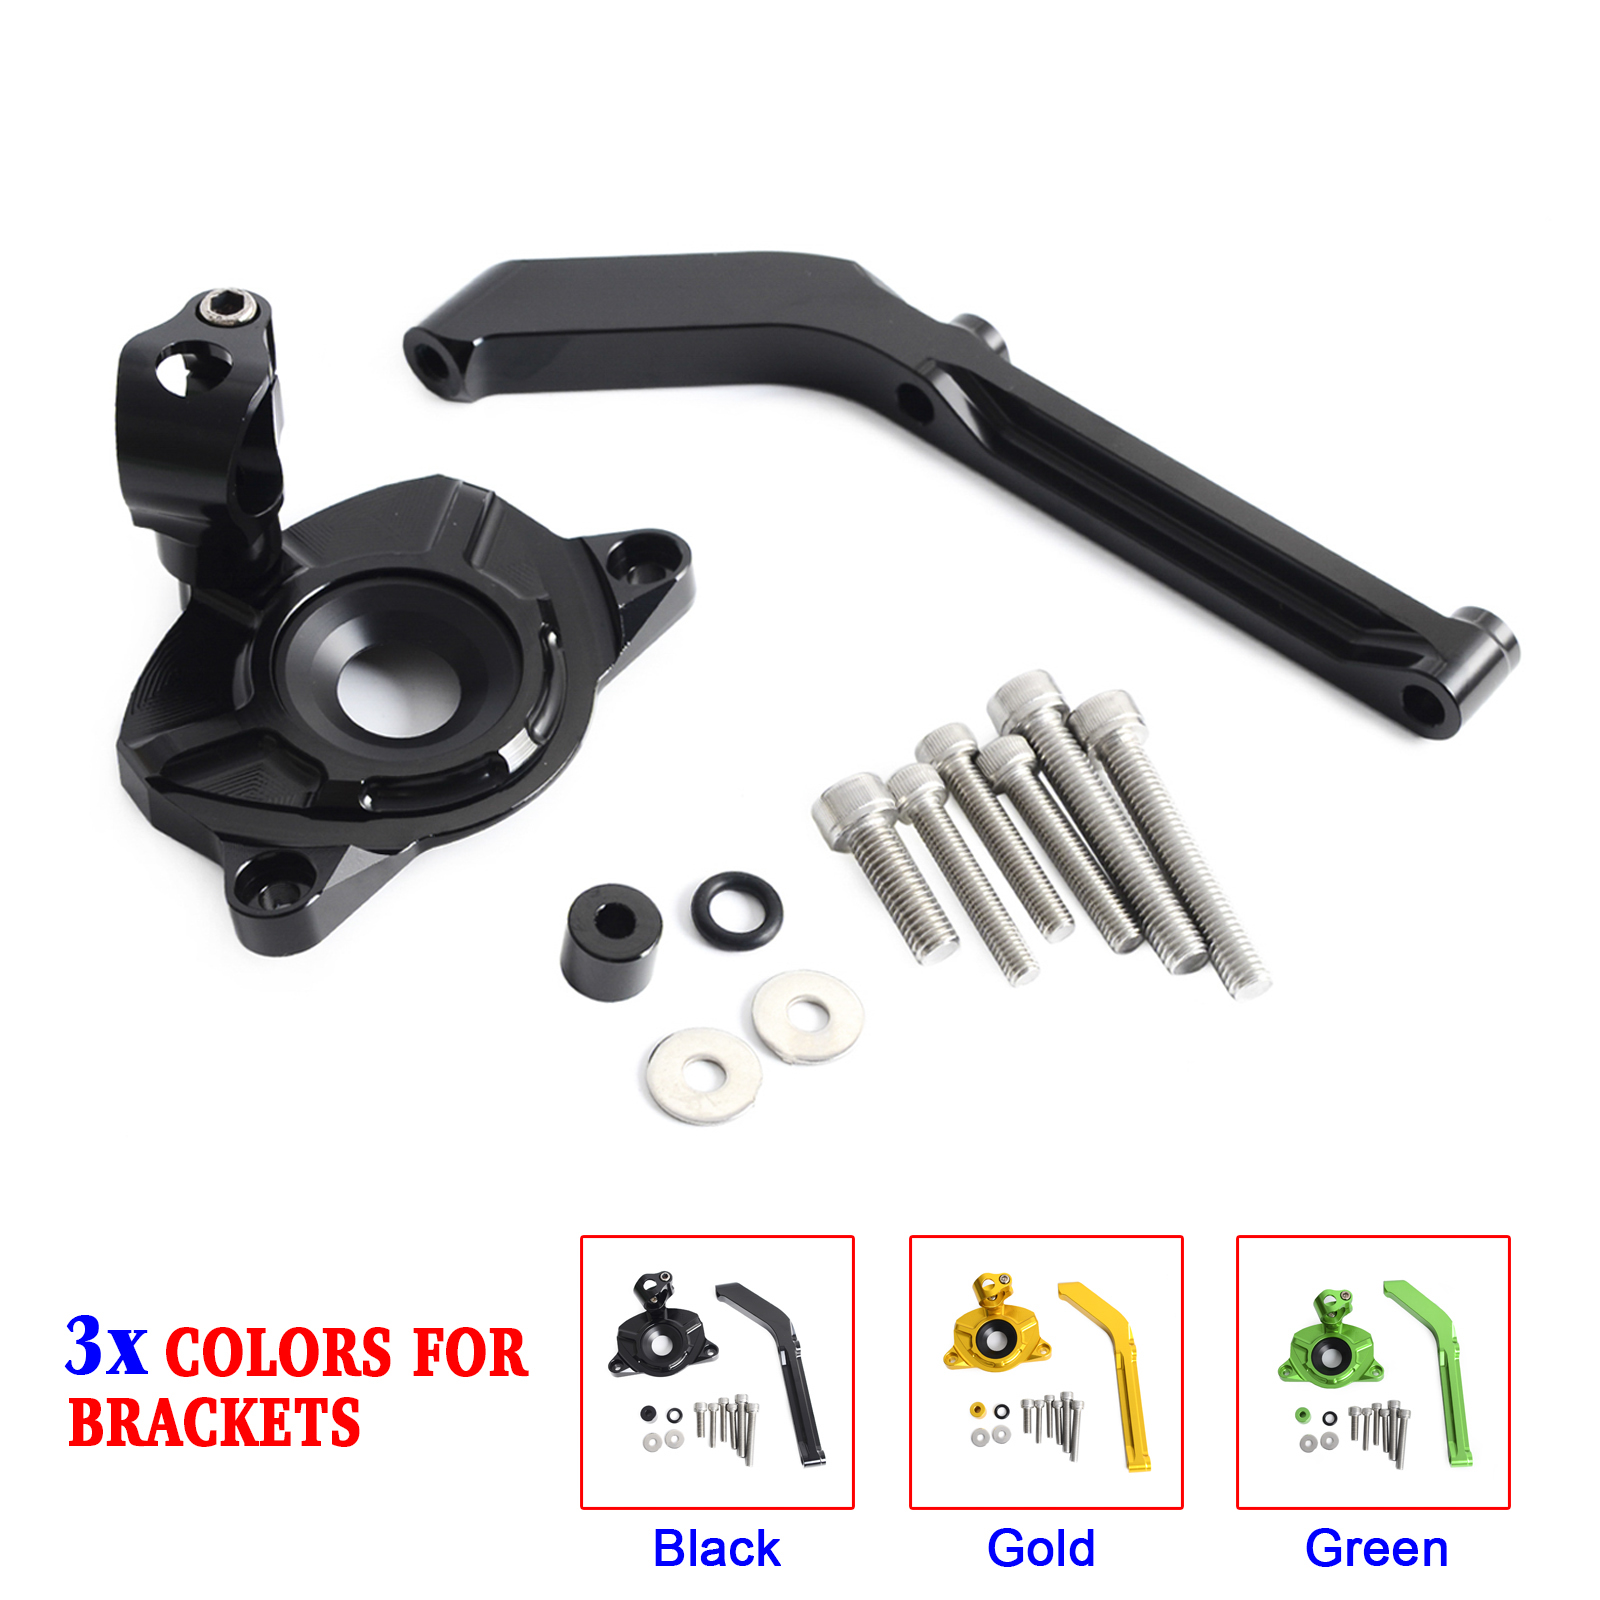 NICECNC Motorcycle Steering Damper Mounting Bracket for Kawasaki Z1000 ABS 2014 2015 2016 2017 Z 1000 (Not Fit Z1000SX)